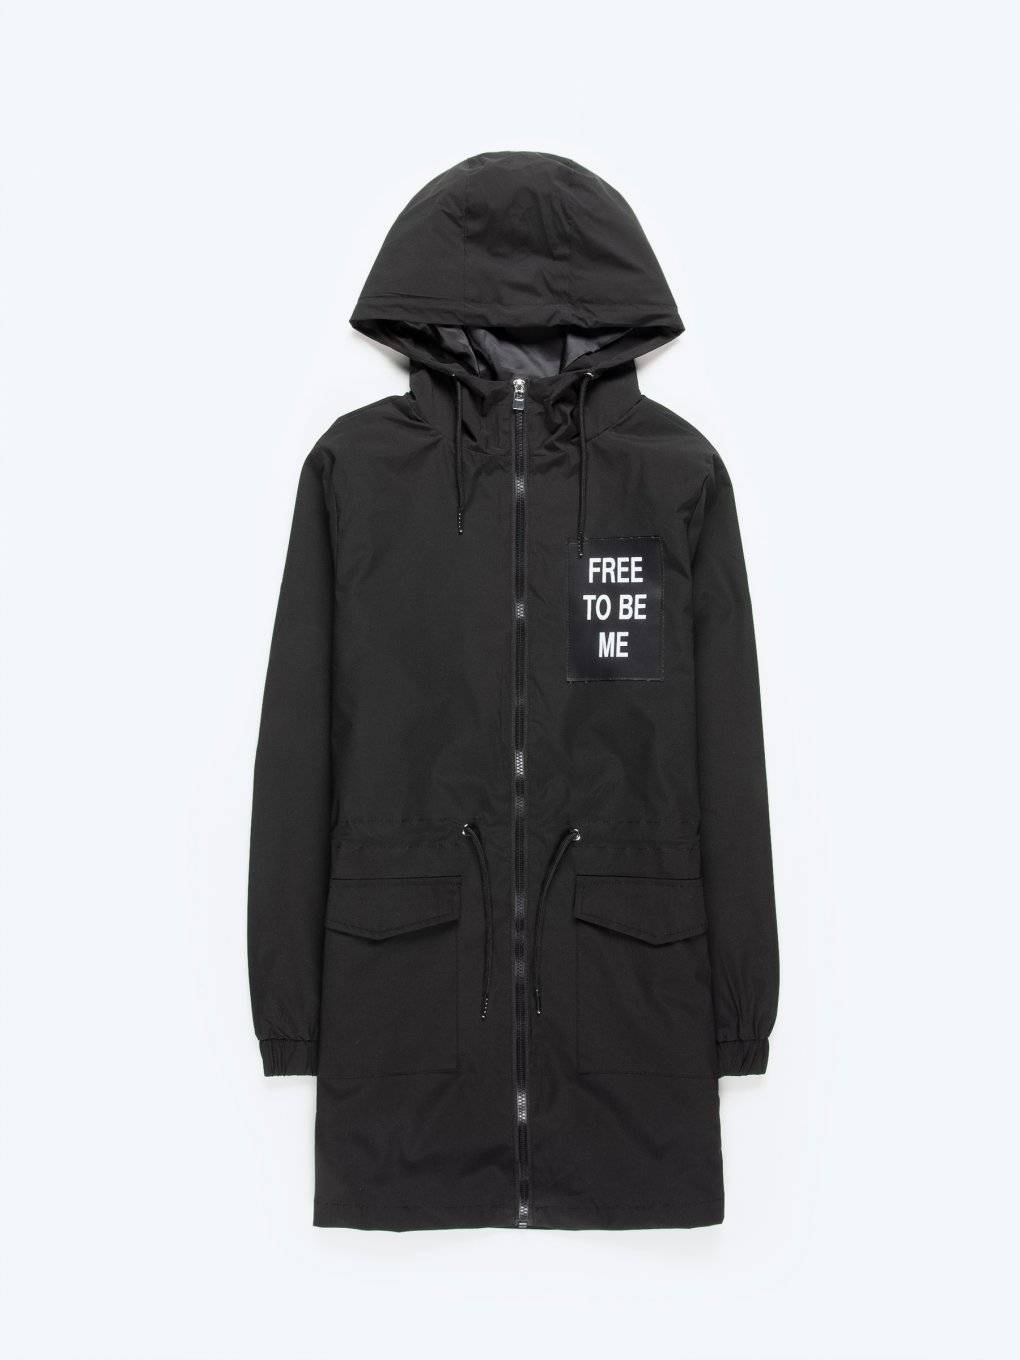 Hooded parka with slogan print